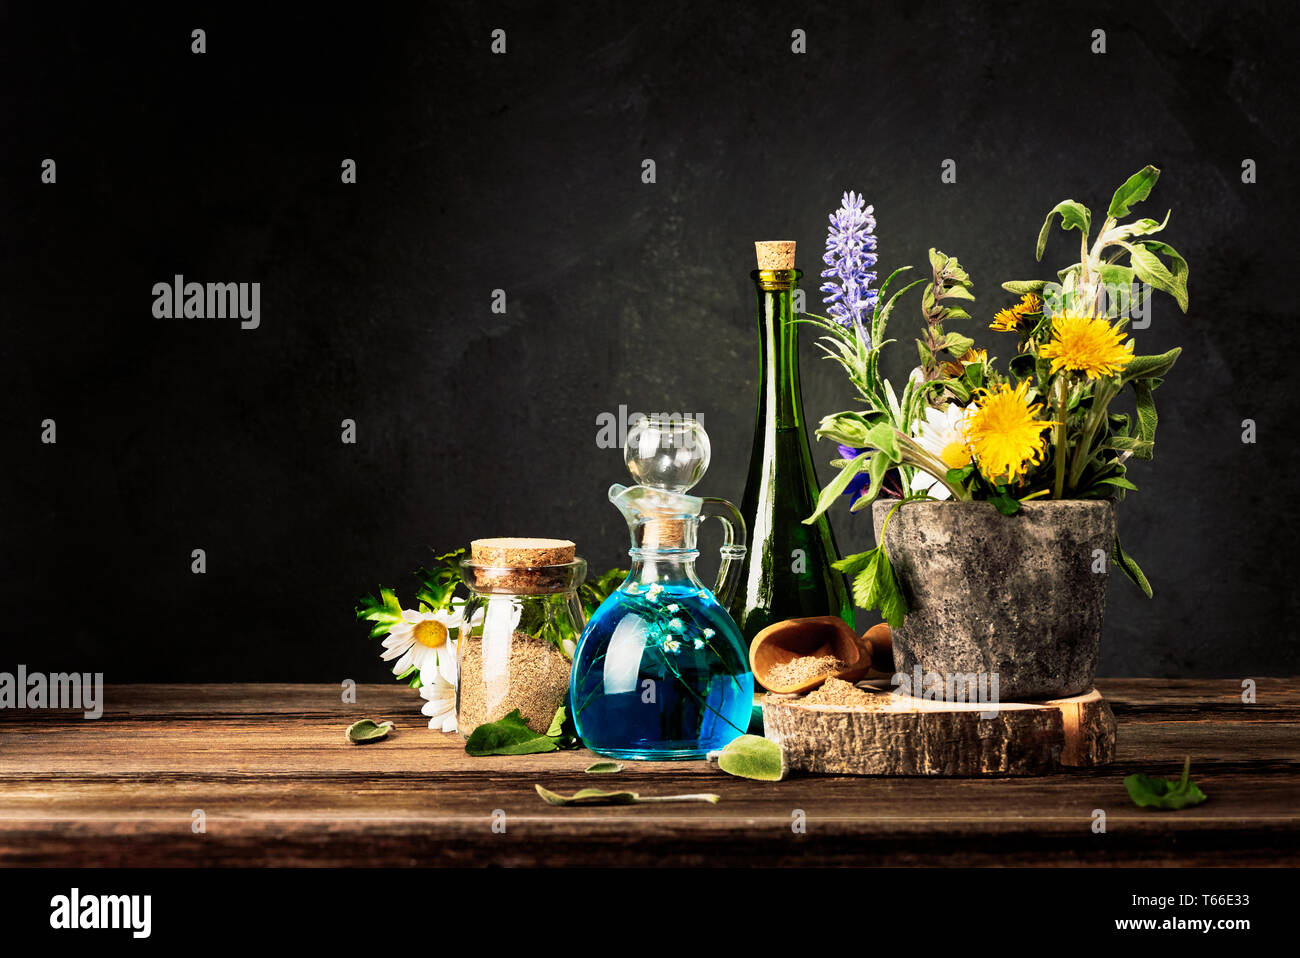 Homeopathy and Alternative Medicine. Healing Herbs in stone mortar and Essential Oil in Glass Bottles. Crushed healing herbs on wooden table. - Stock Image